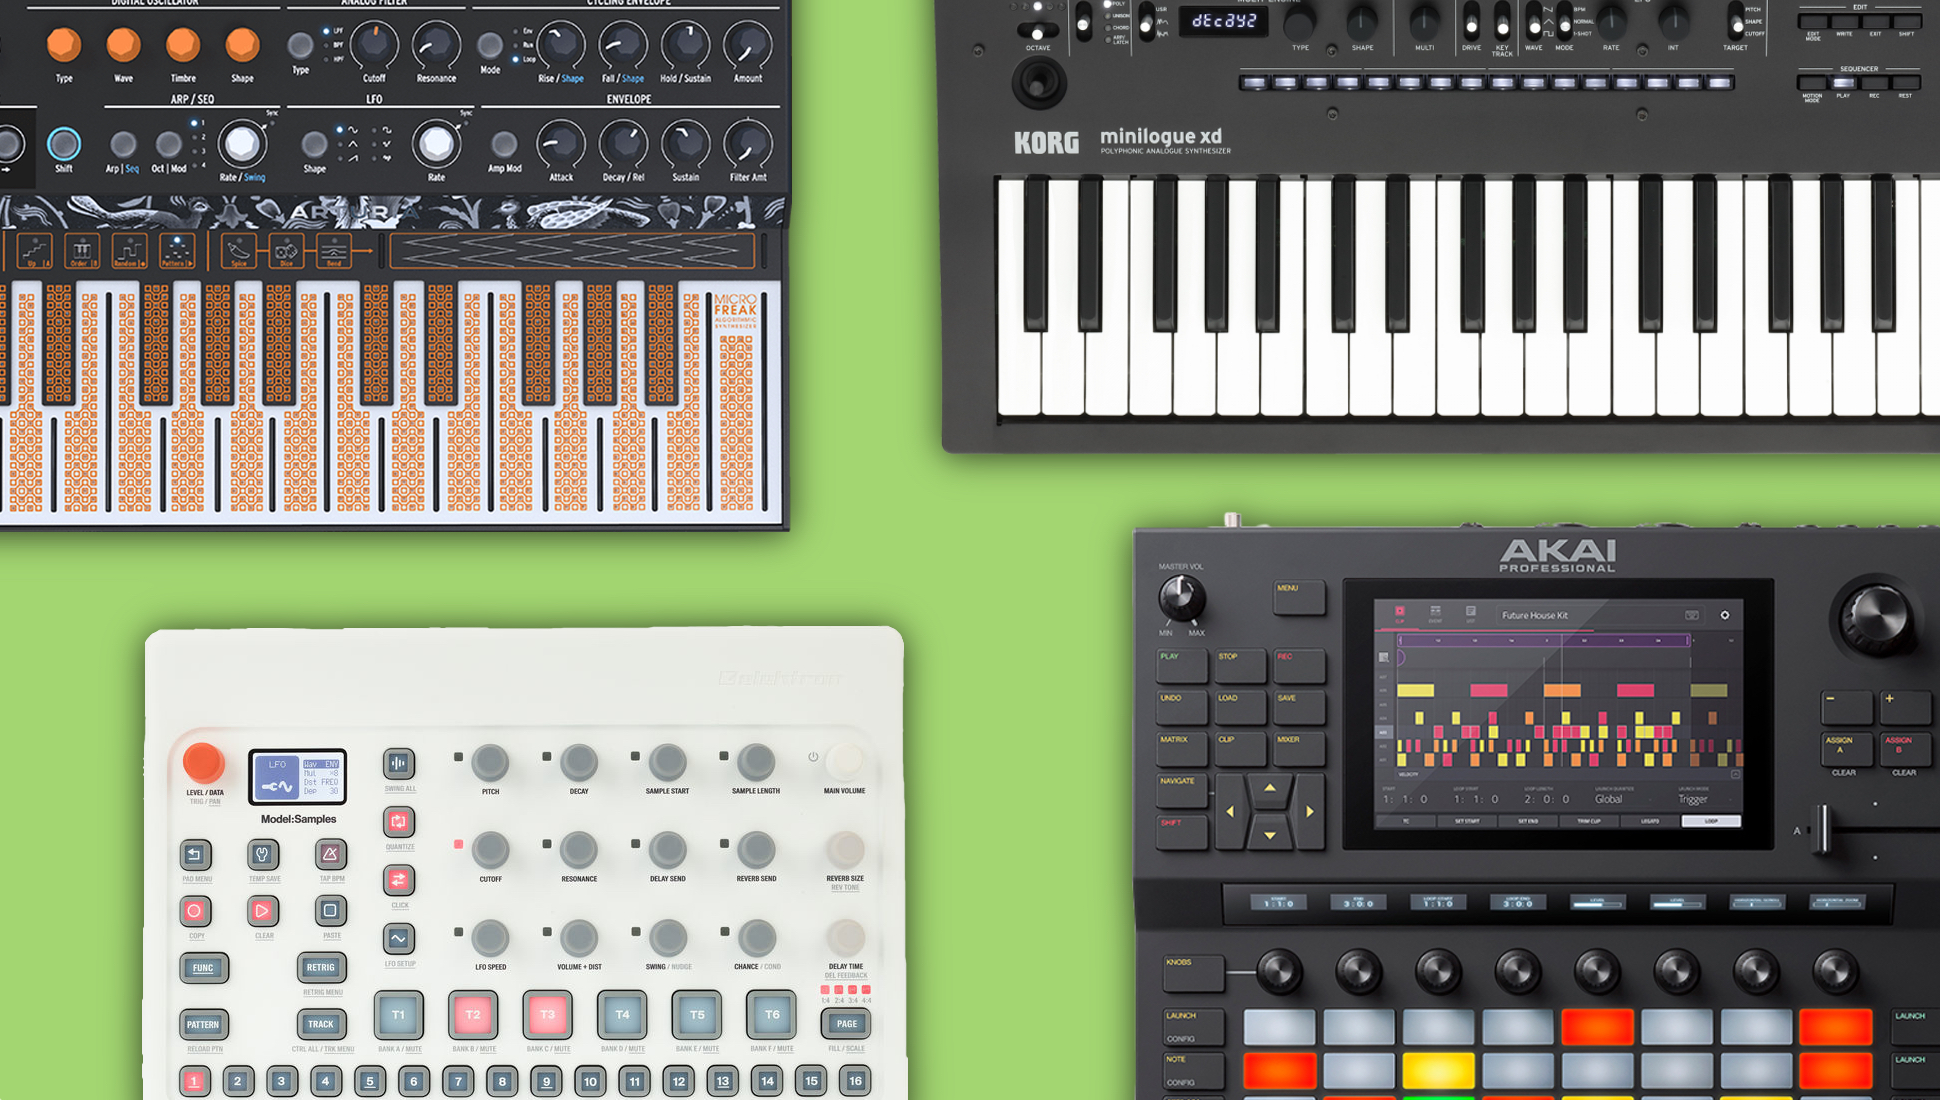 Best Synths 2019 Synths, controllers and gear we'll be making music with in 2019